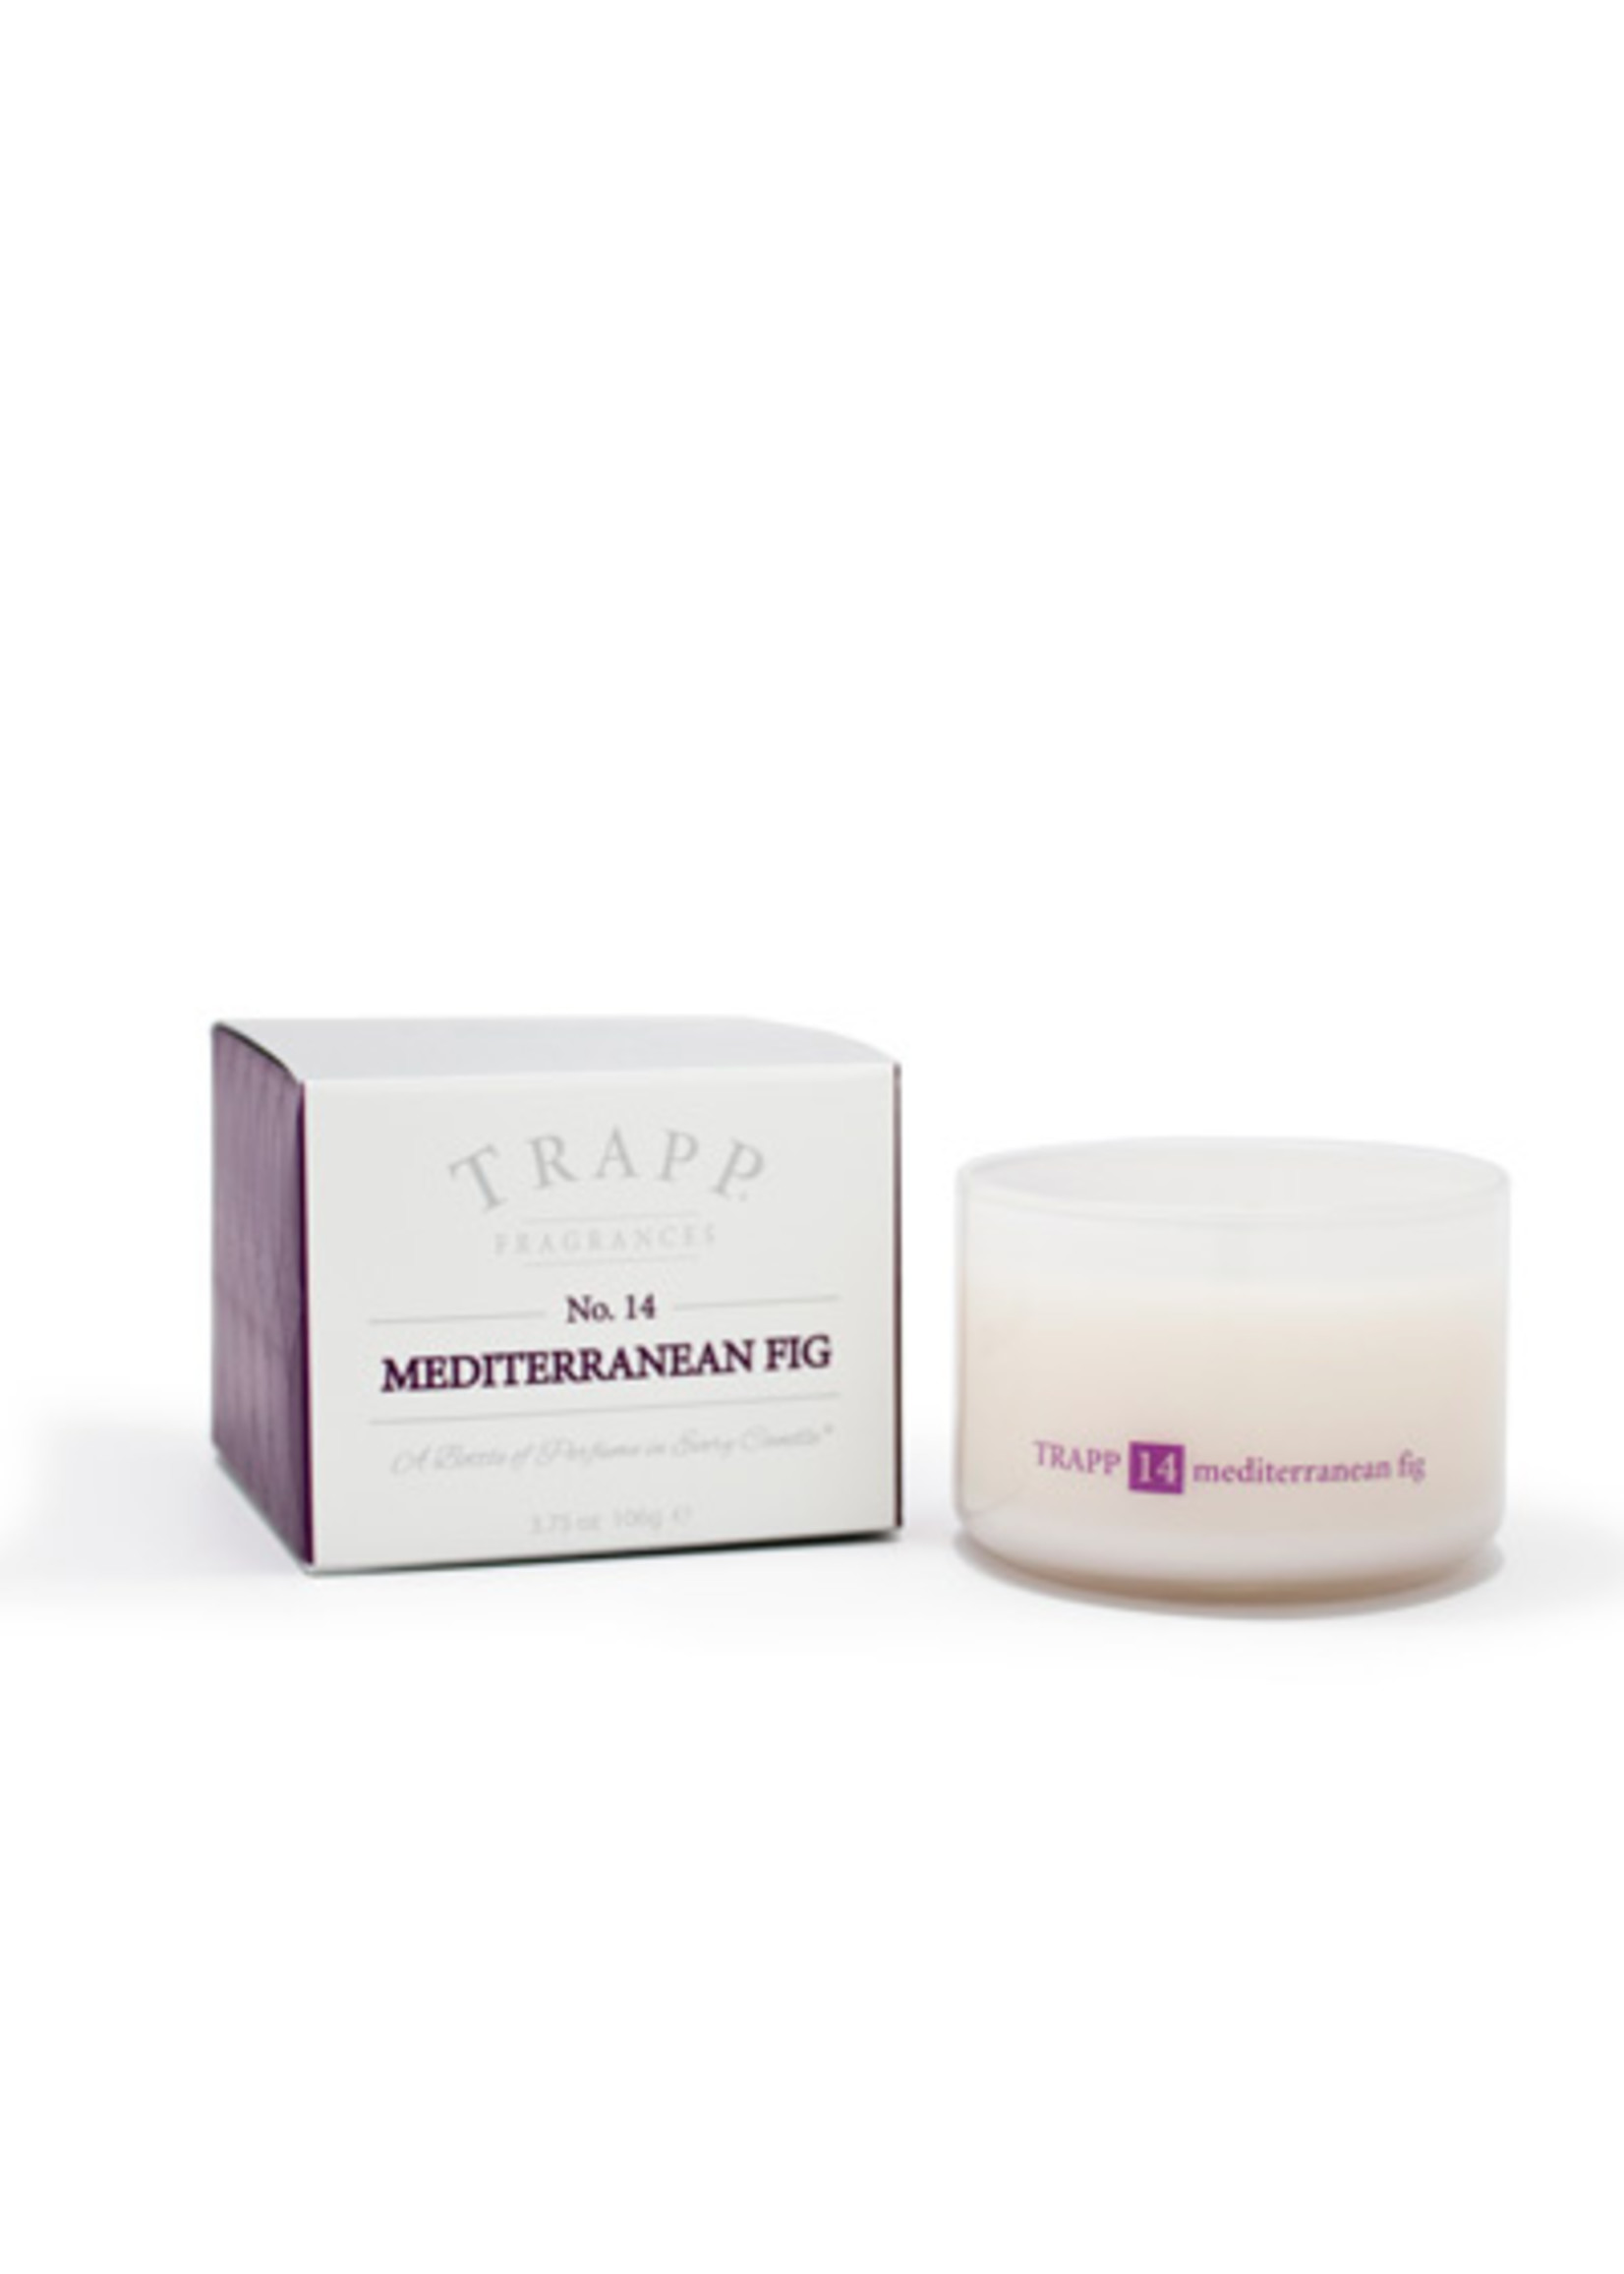 Trapp Candles Ambiance Collection - No. 14 Mediterranean Fig - 3.75 oz. Poured Candle